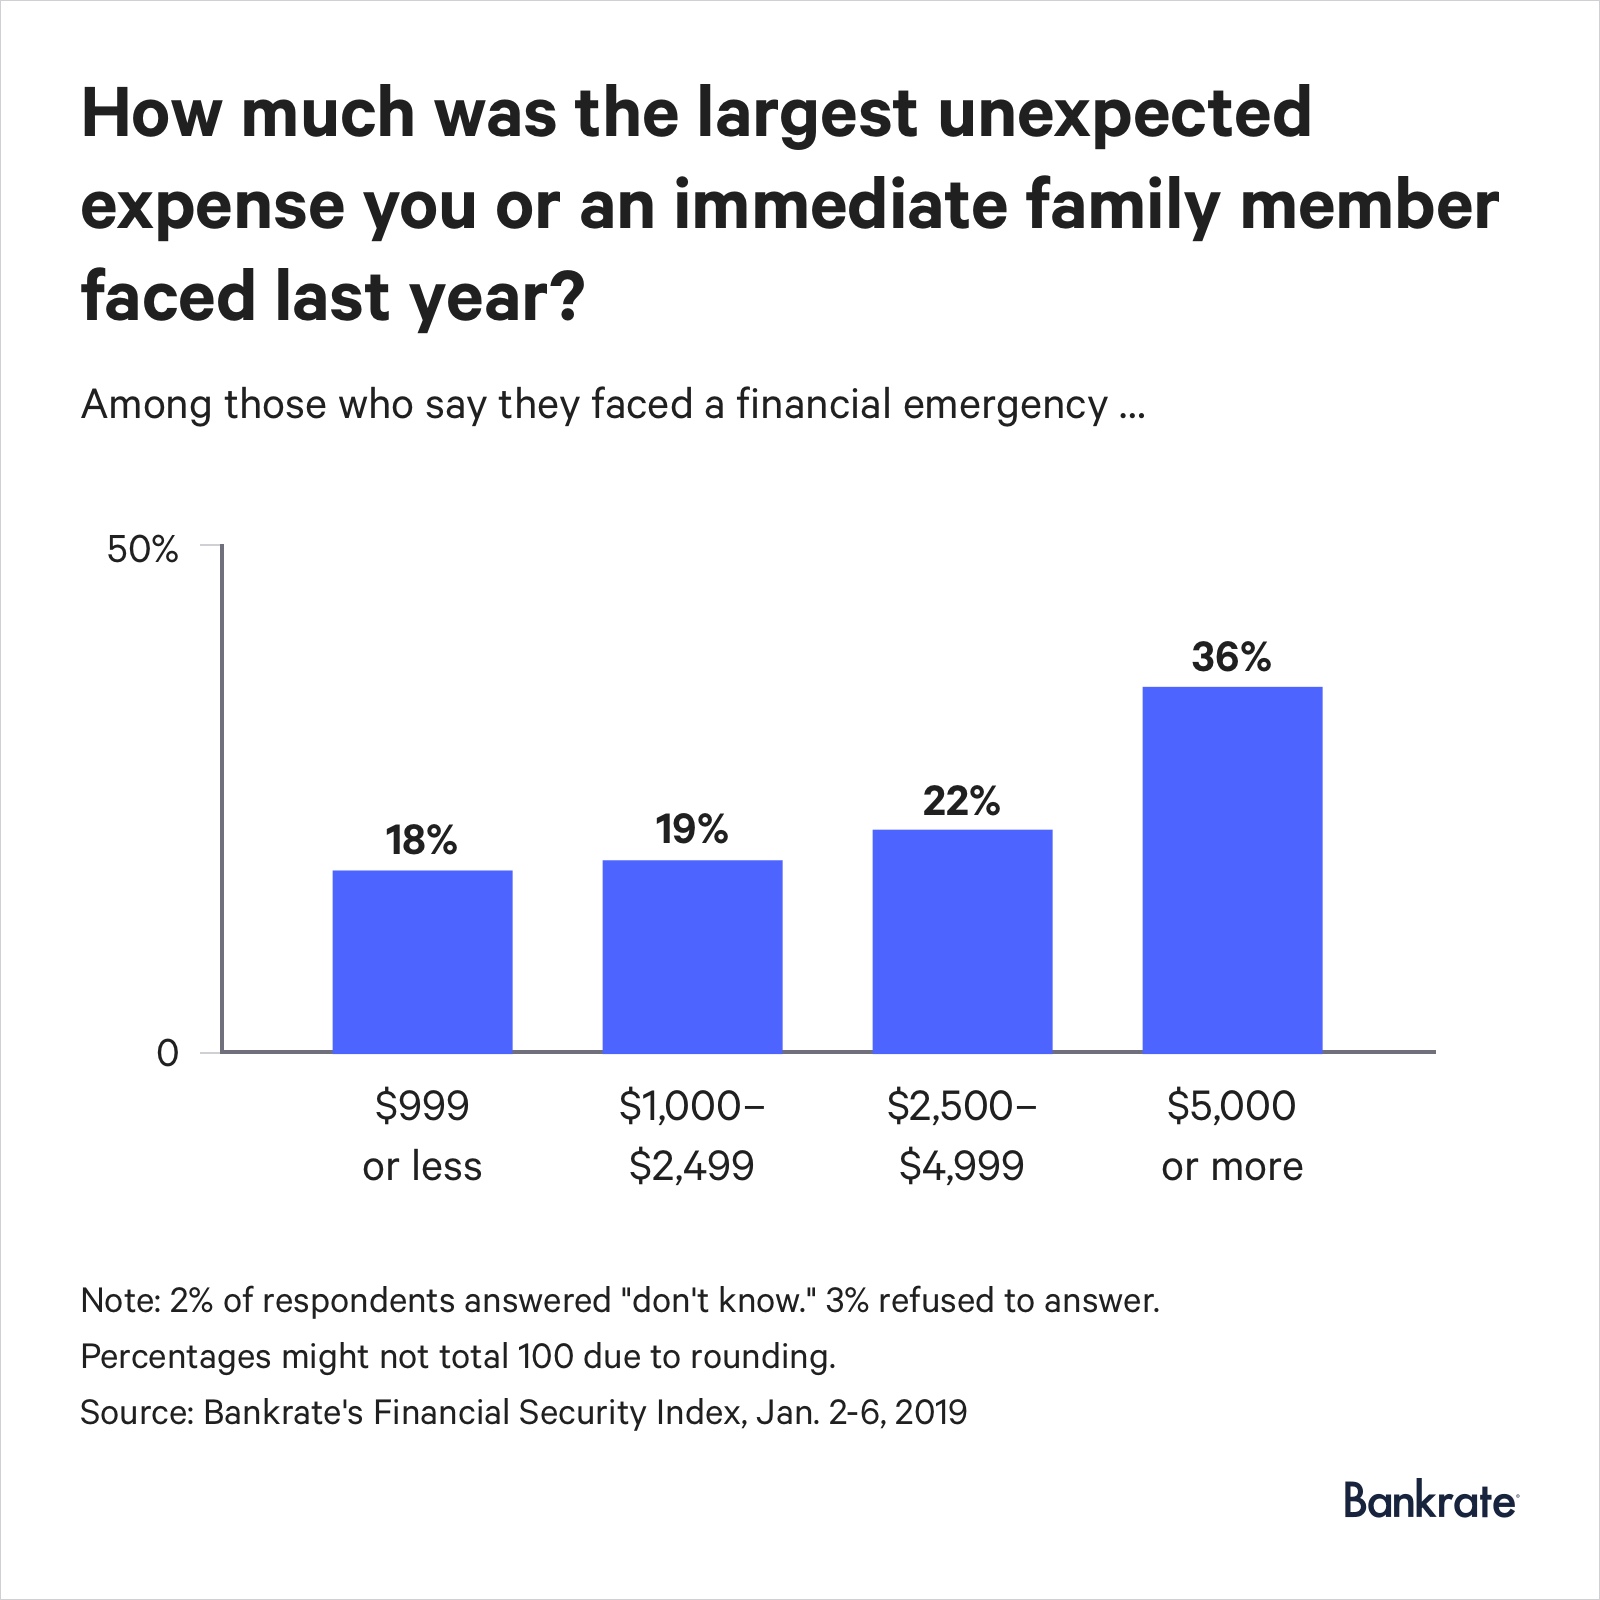 Chart: 36% of those who faced a financial emergency had to spend $ 5,000 or more